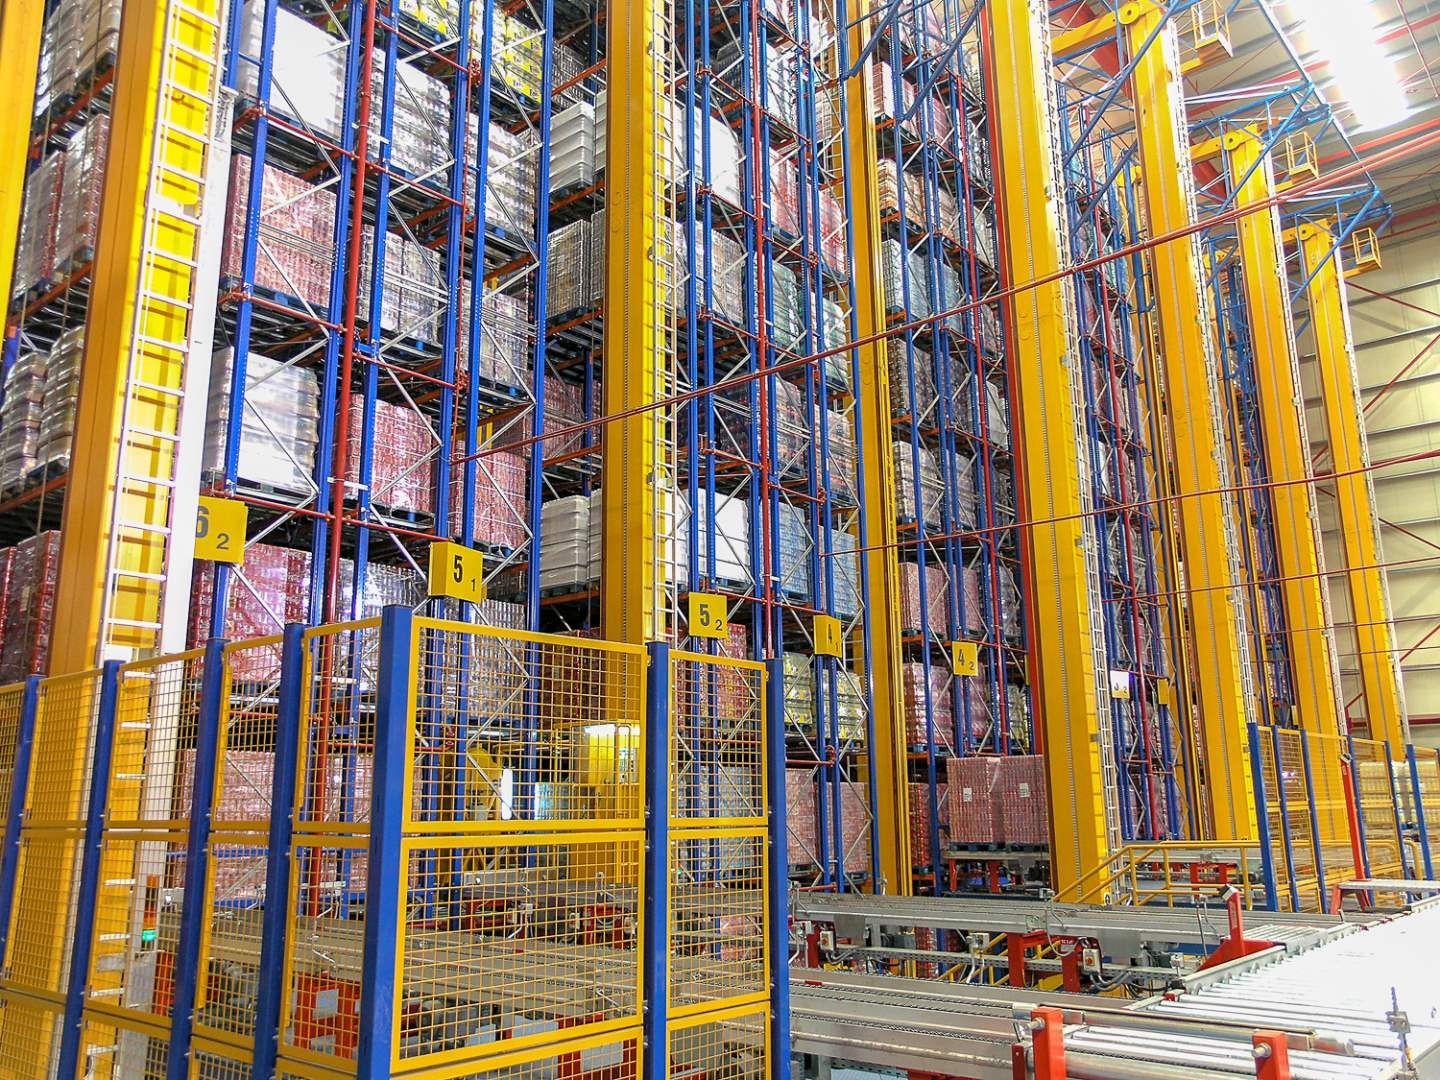 Automated storage & retrieval system (ASRS)